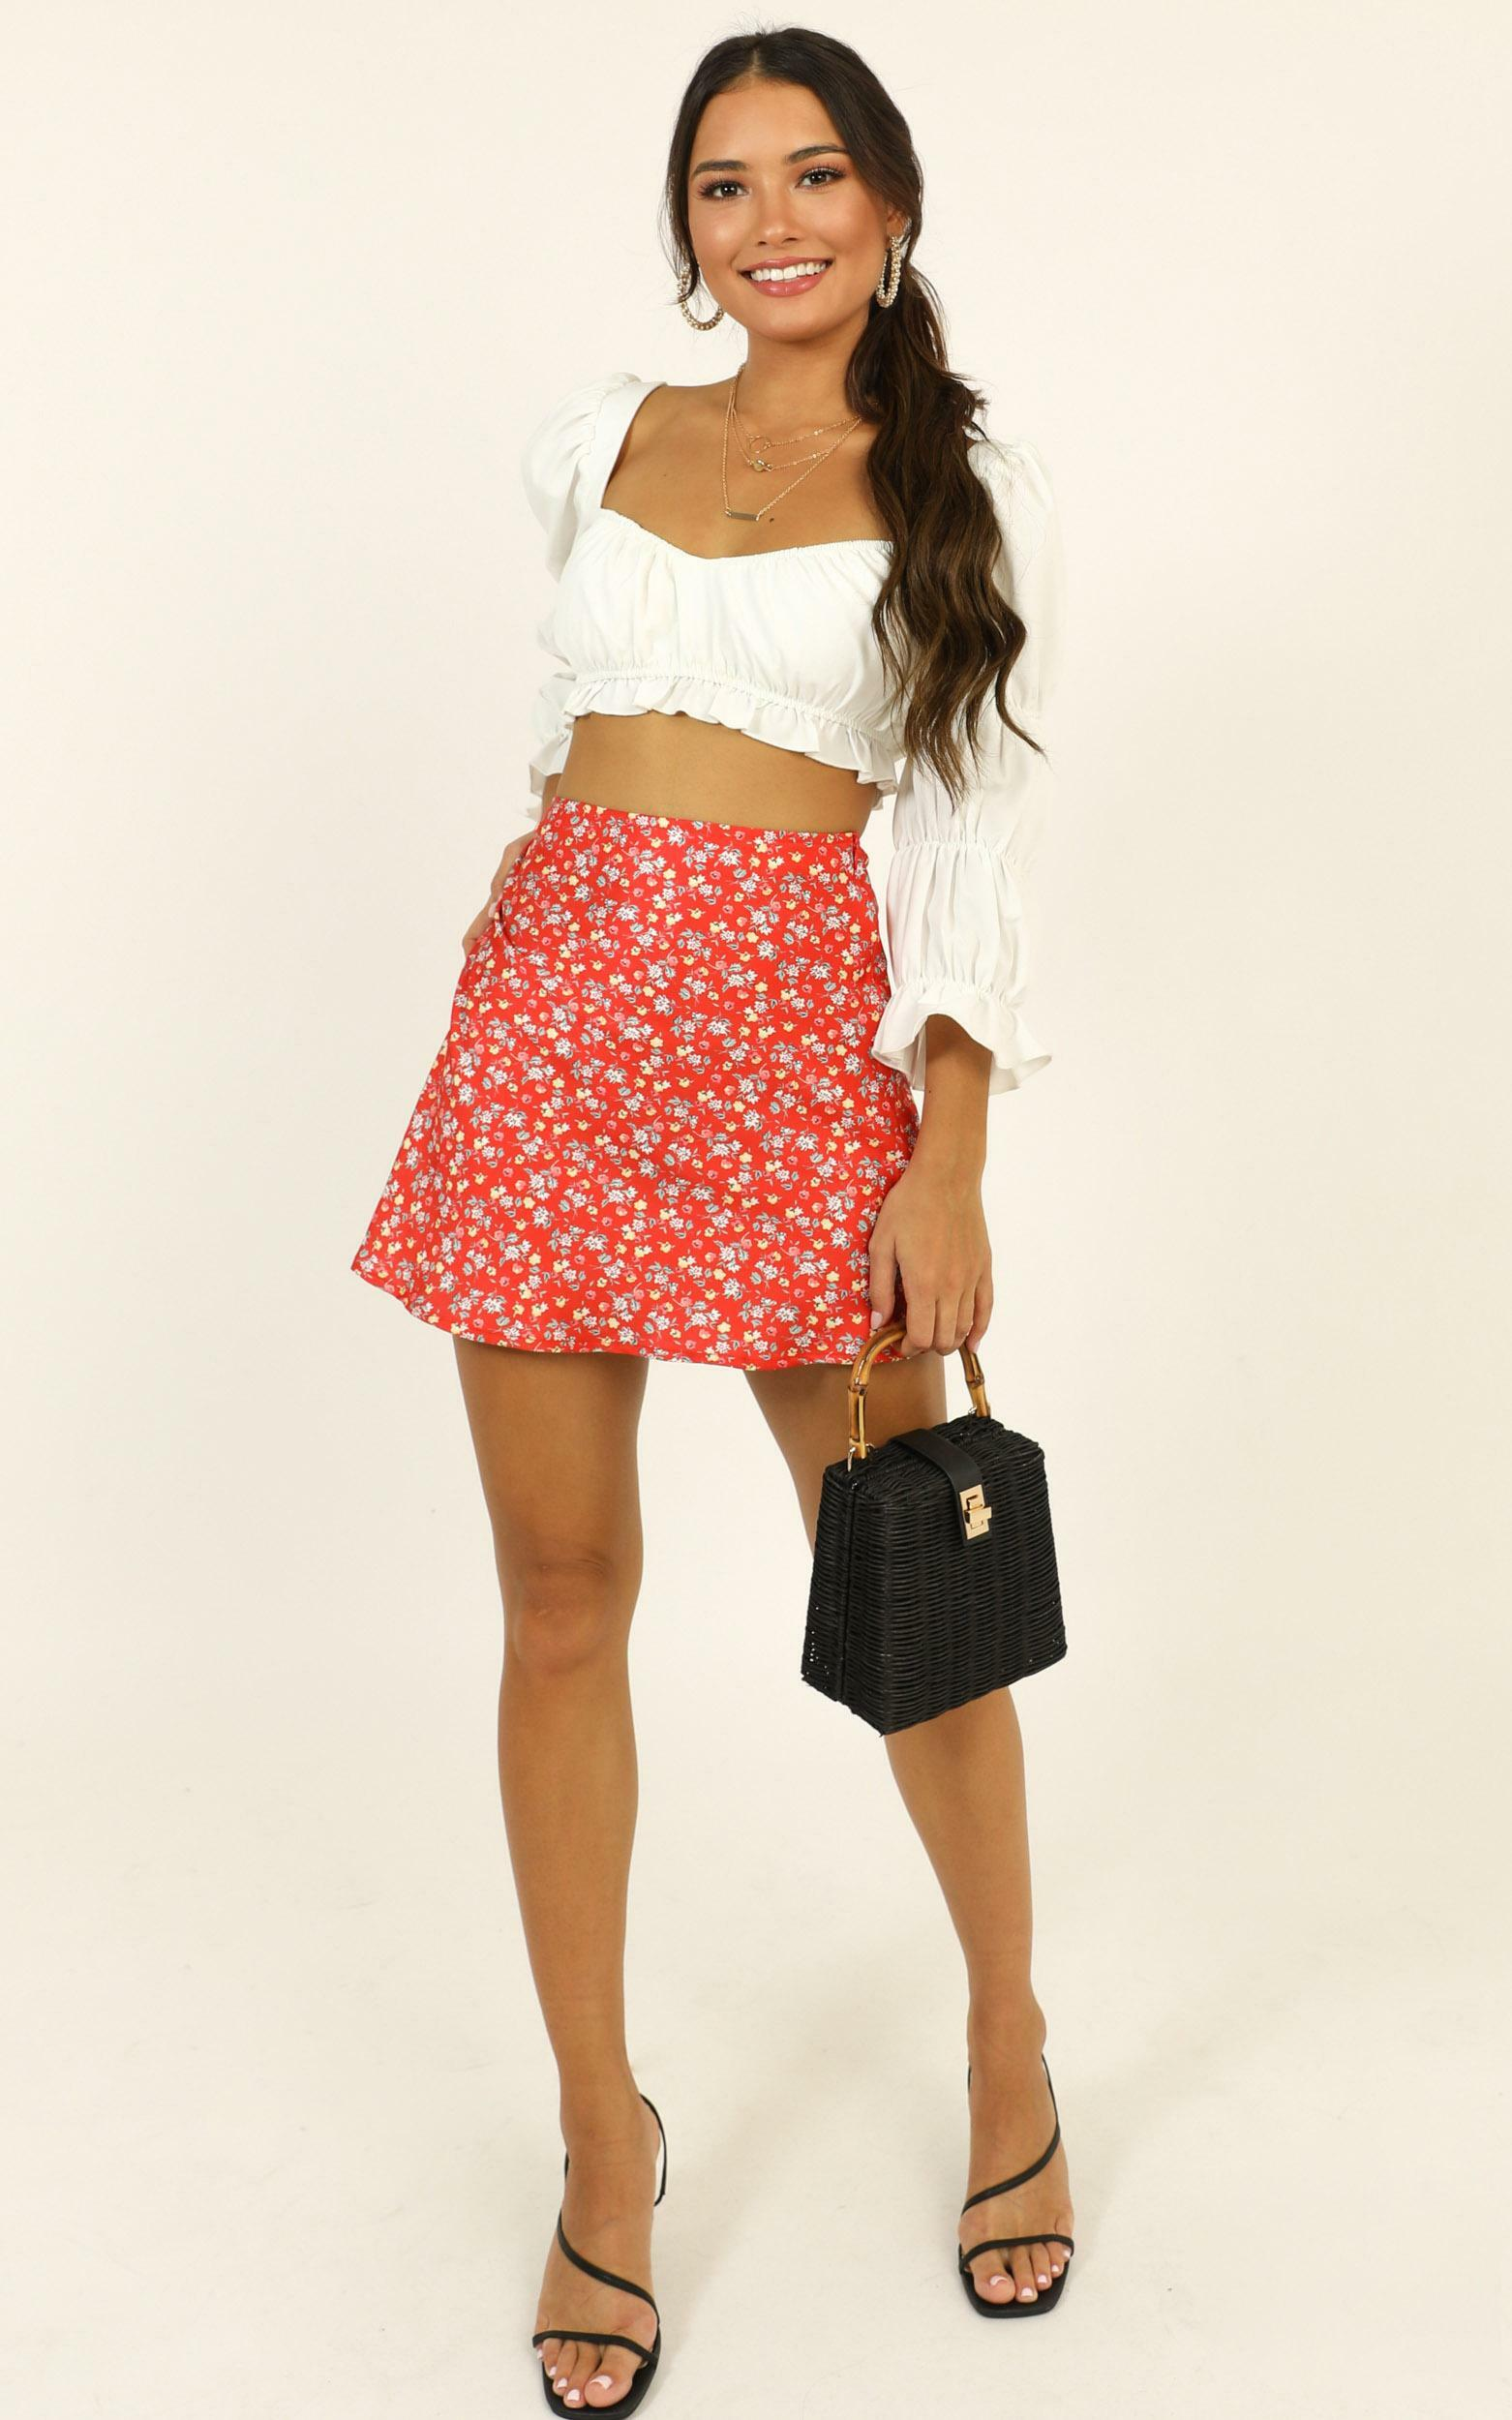 Puzzle Pieces skirt in red floral - 12 (L), Red, hi-res image number null